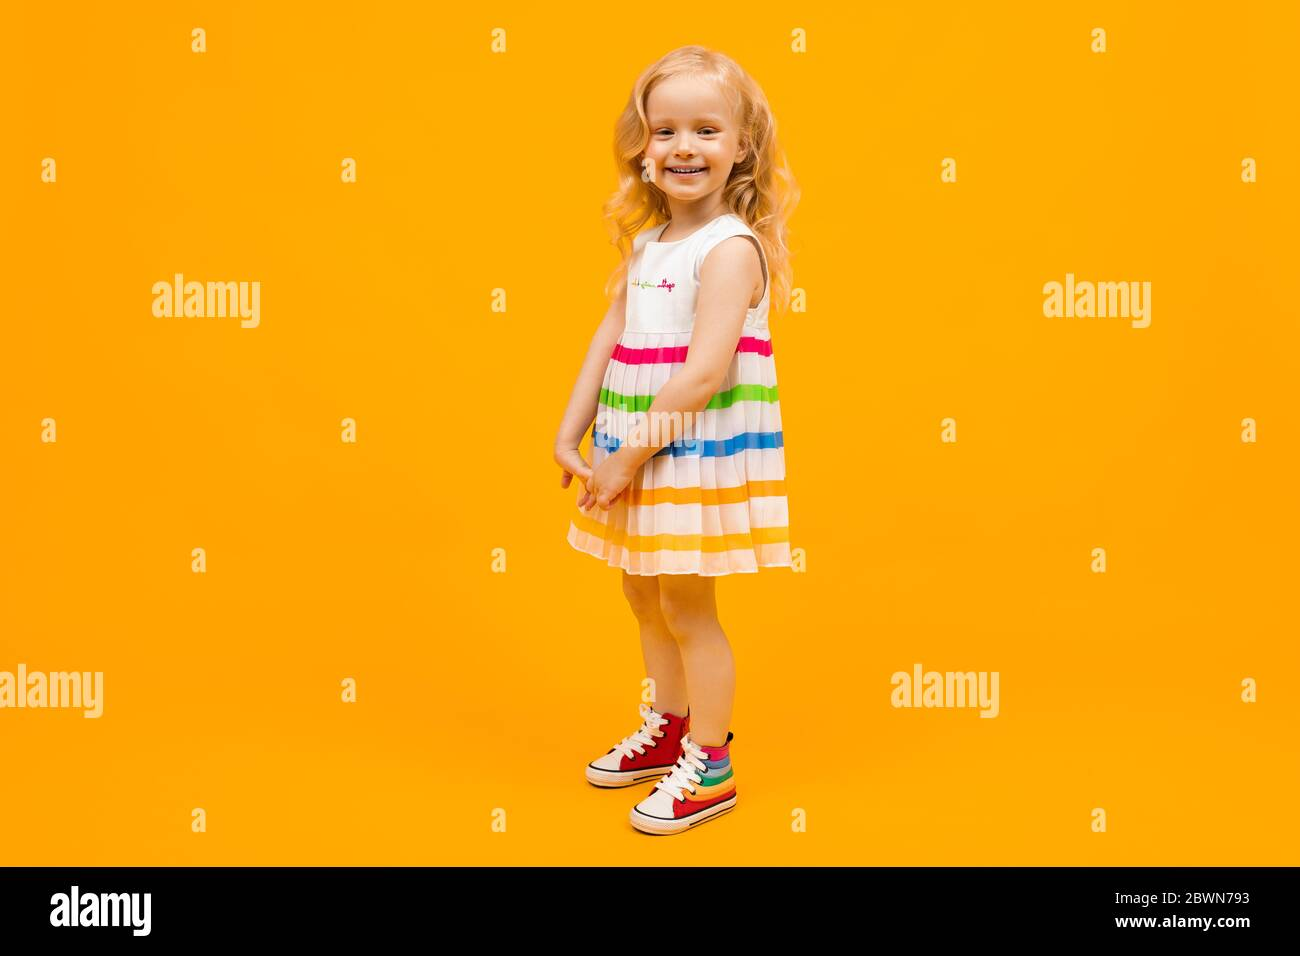 blond girl in a bright striped summer dress in full growth on an orange background Stock Photo